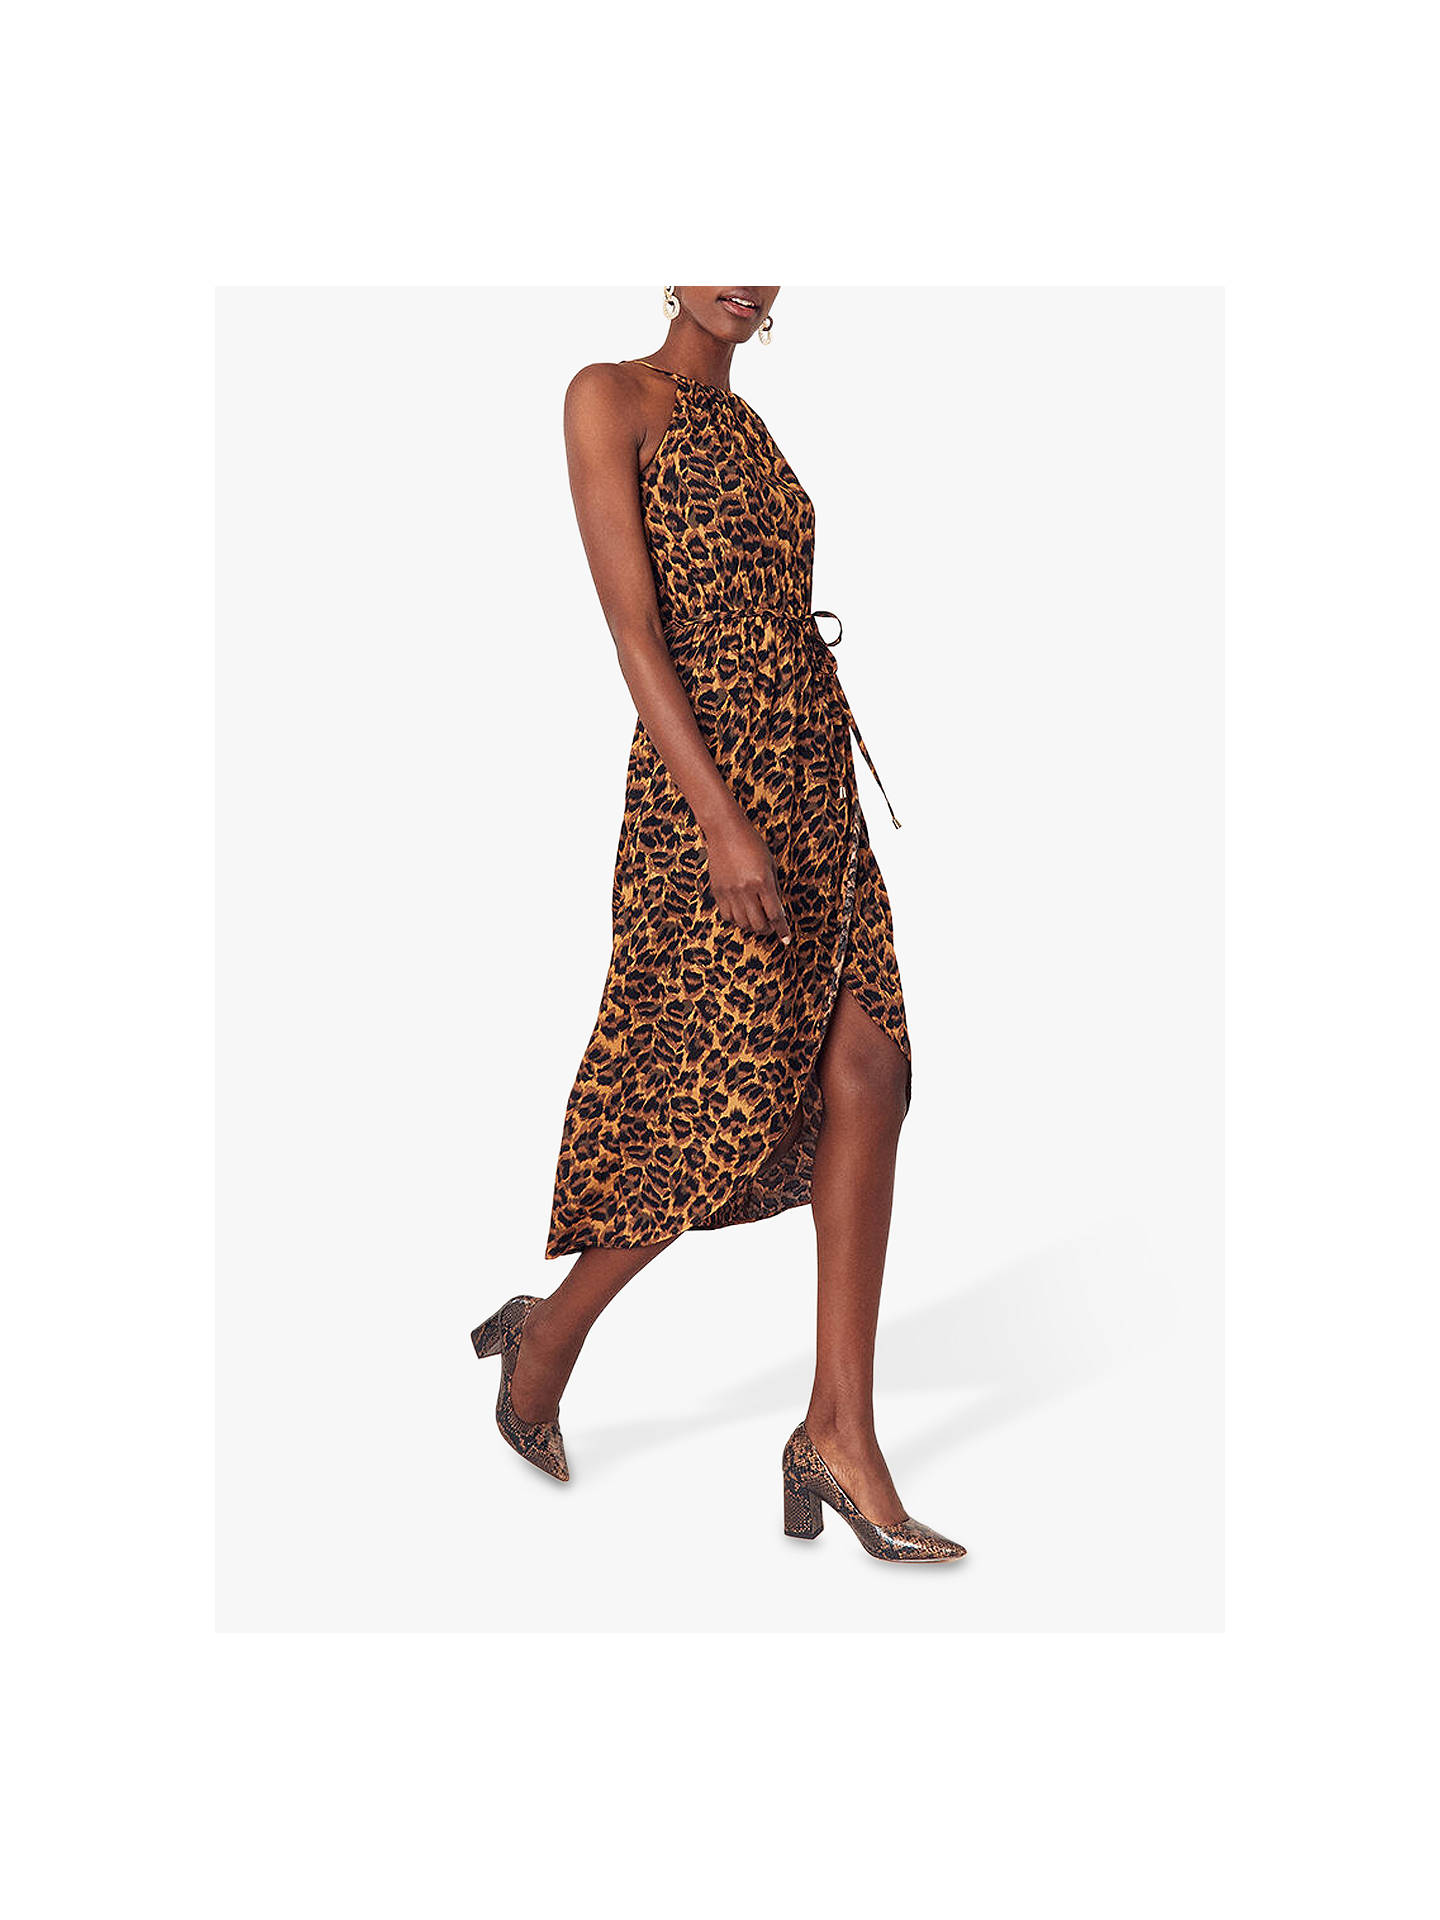 fddbd541d9a8 ... Buy Oasis Leopard Print Halter Dress, Multi, 6R Online at johnlewis.com  ...